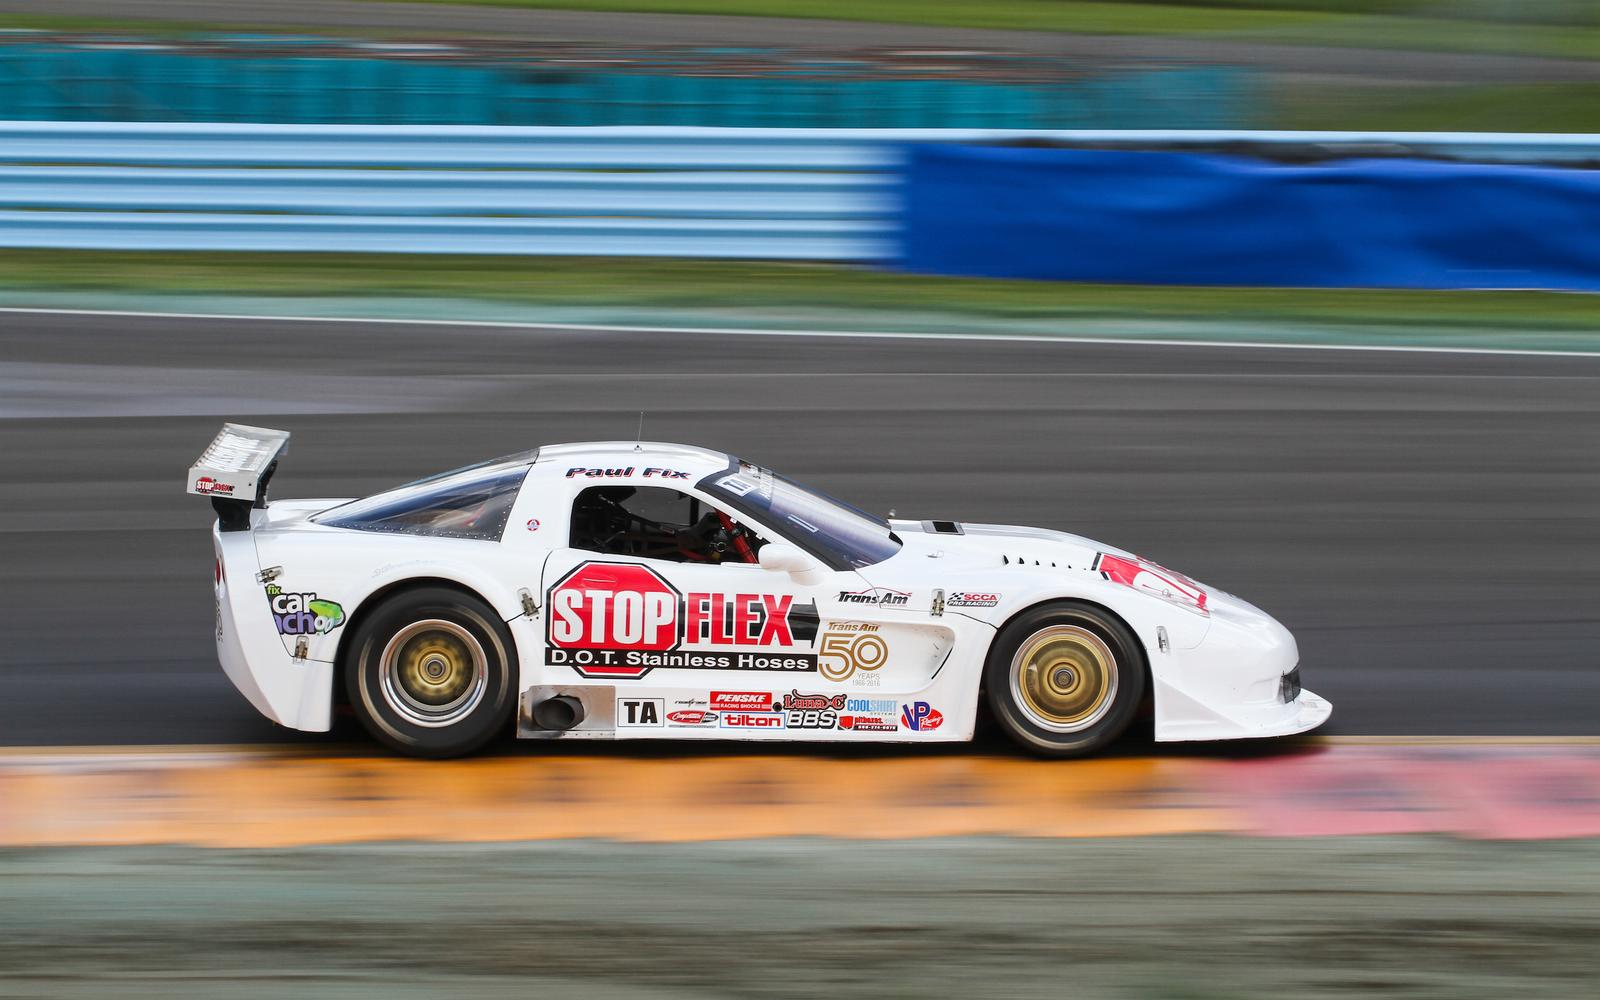 Paul Fix returns to Watkins Glen Trans Am